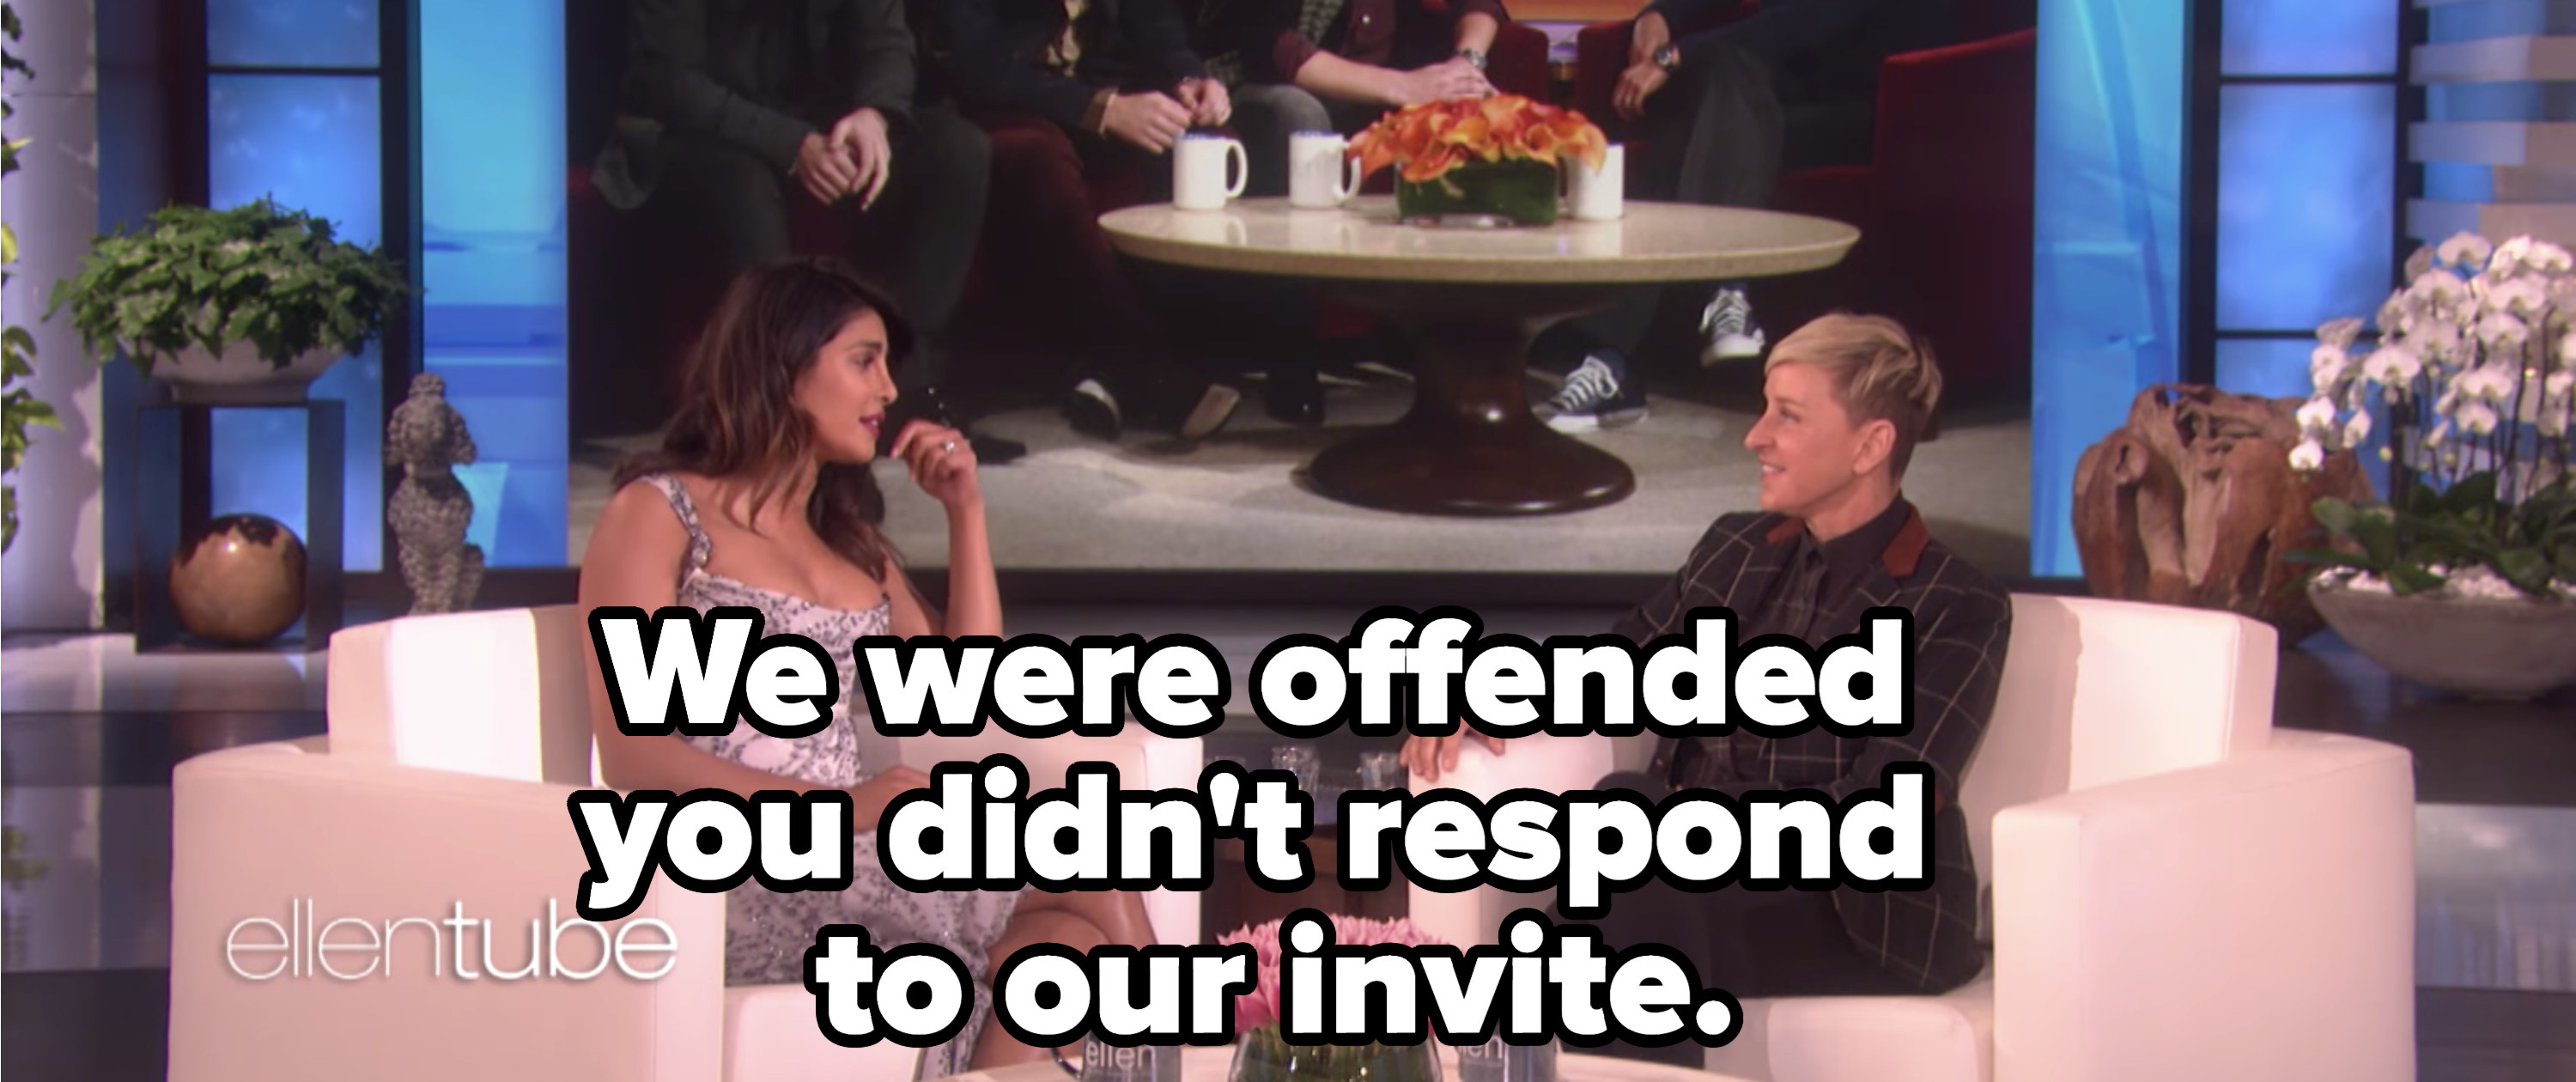 """She said """"We were offended you didn't respond to our invite."""""""